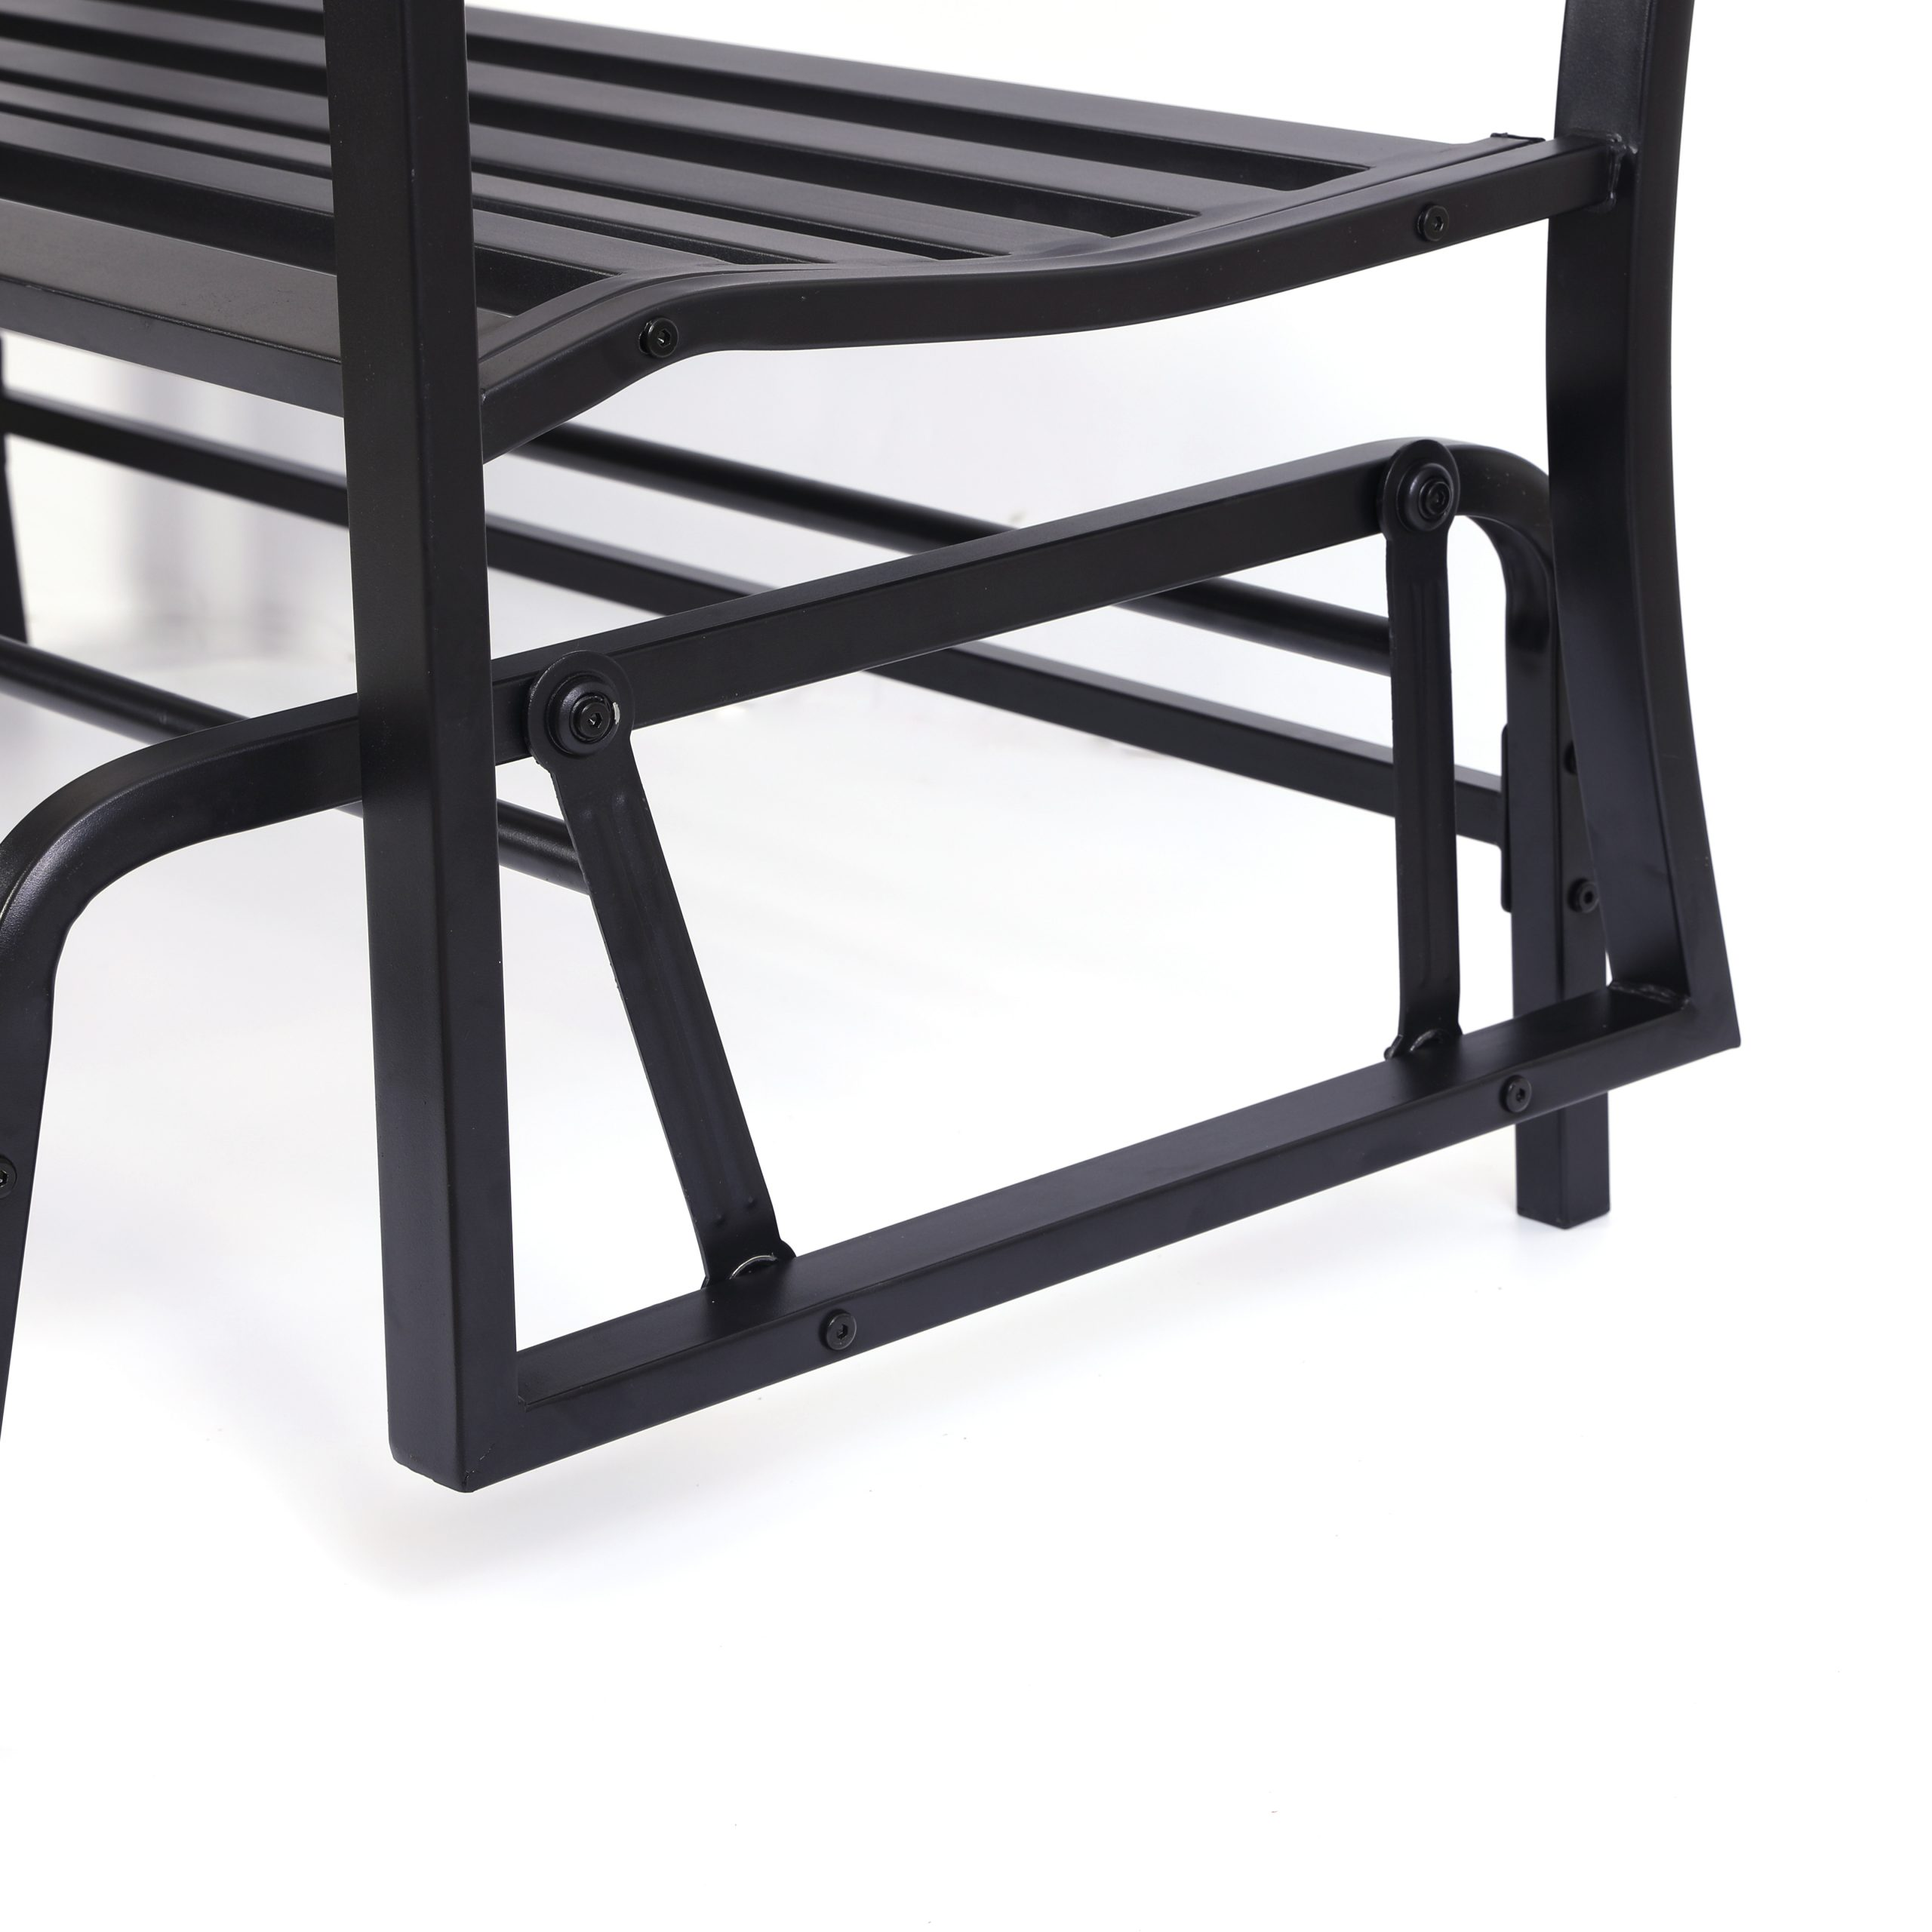 "Popular Black Steel Patio Swing Glider Benches Powder Coated Intended For Details About Gardenised Black Steel Patio Garden Park Yard 50"" Outdoor  Swing Glider Bench (View 24 of 30)"